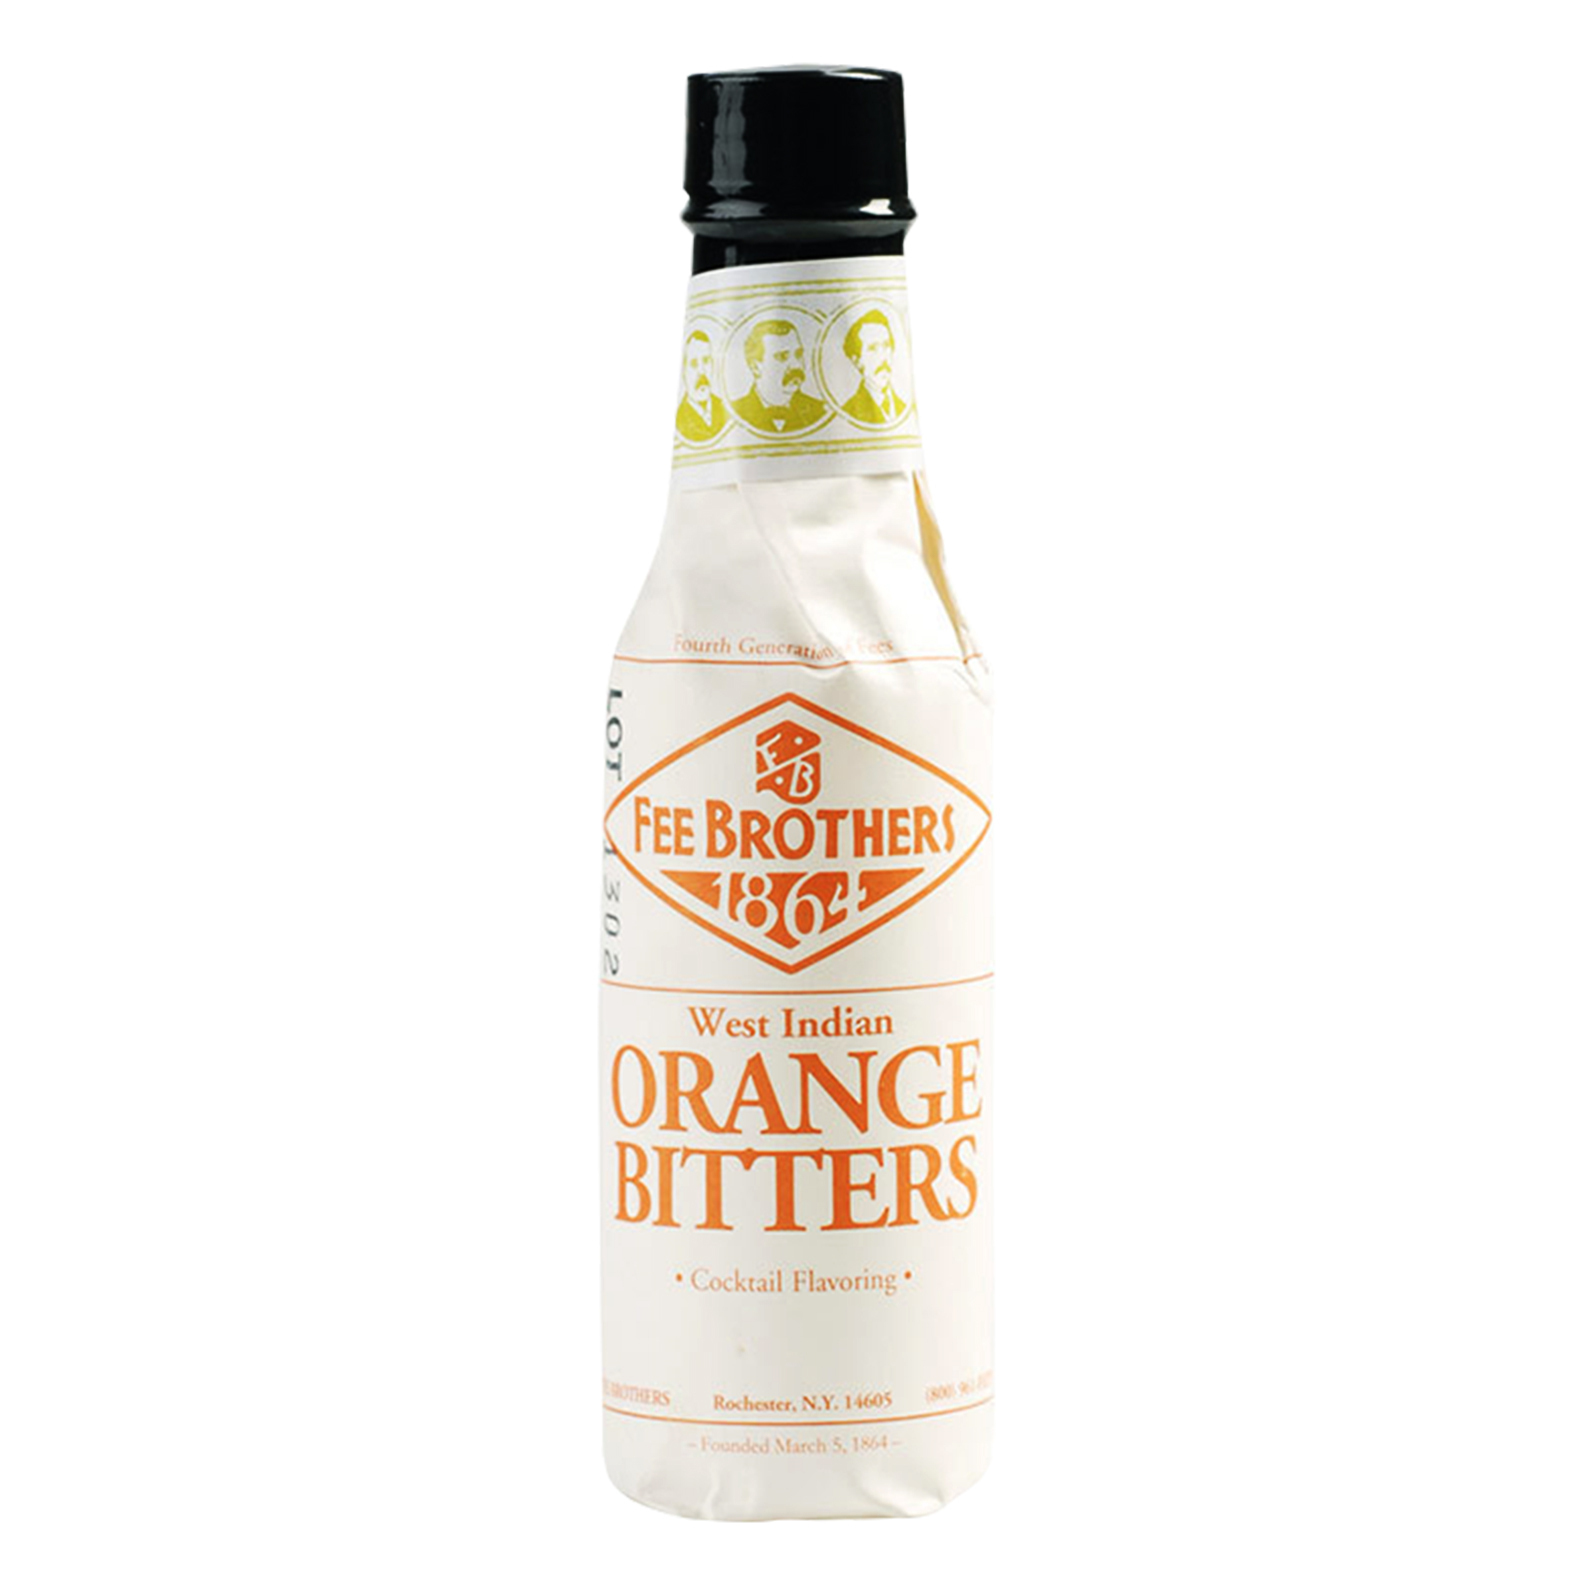 Fee Brothers 1864 West Indian Orange Bitters - Bitter Aromatico - 15cl - Fee Brothers